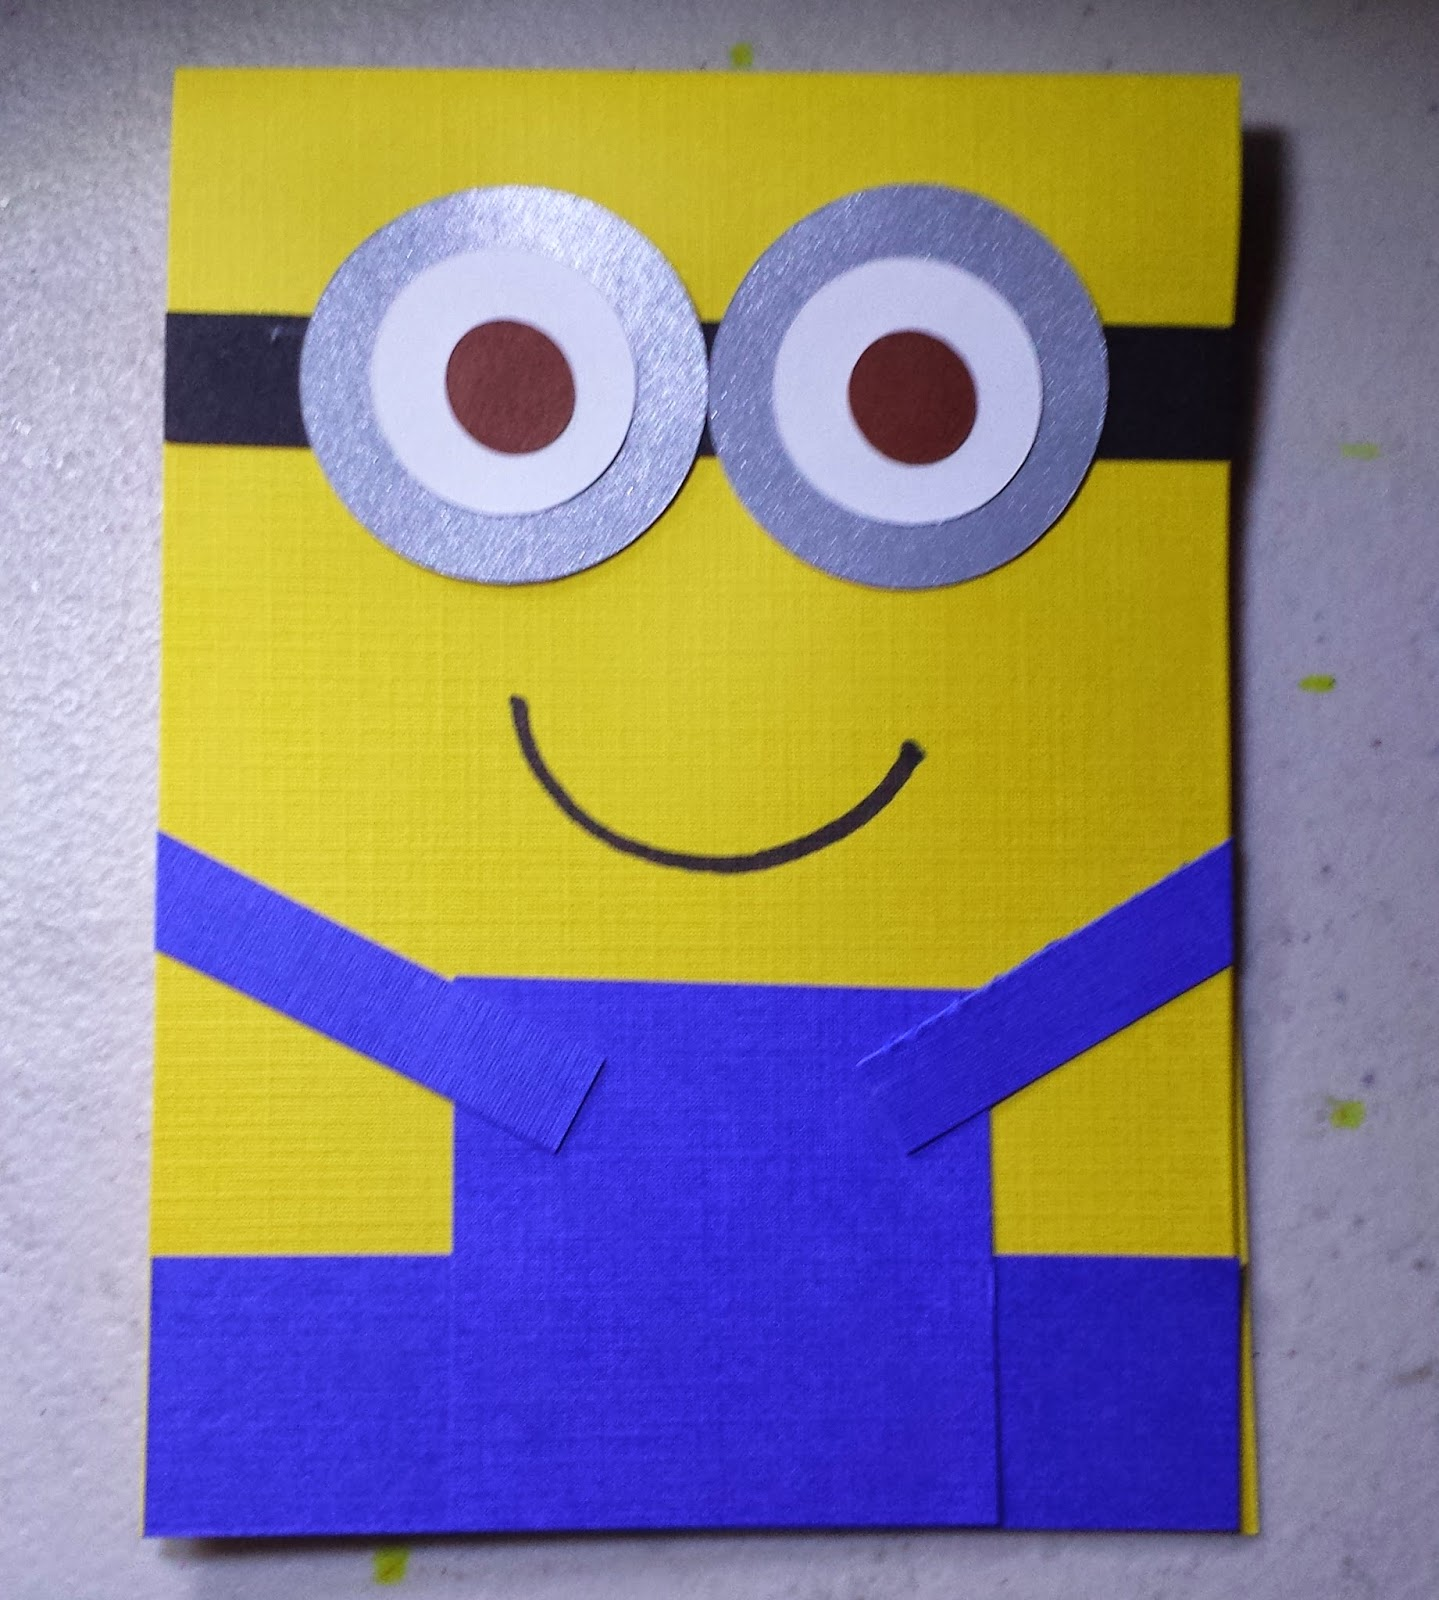 Completed DIY Despicable Me Minion Party Invitation